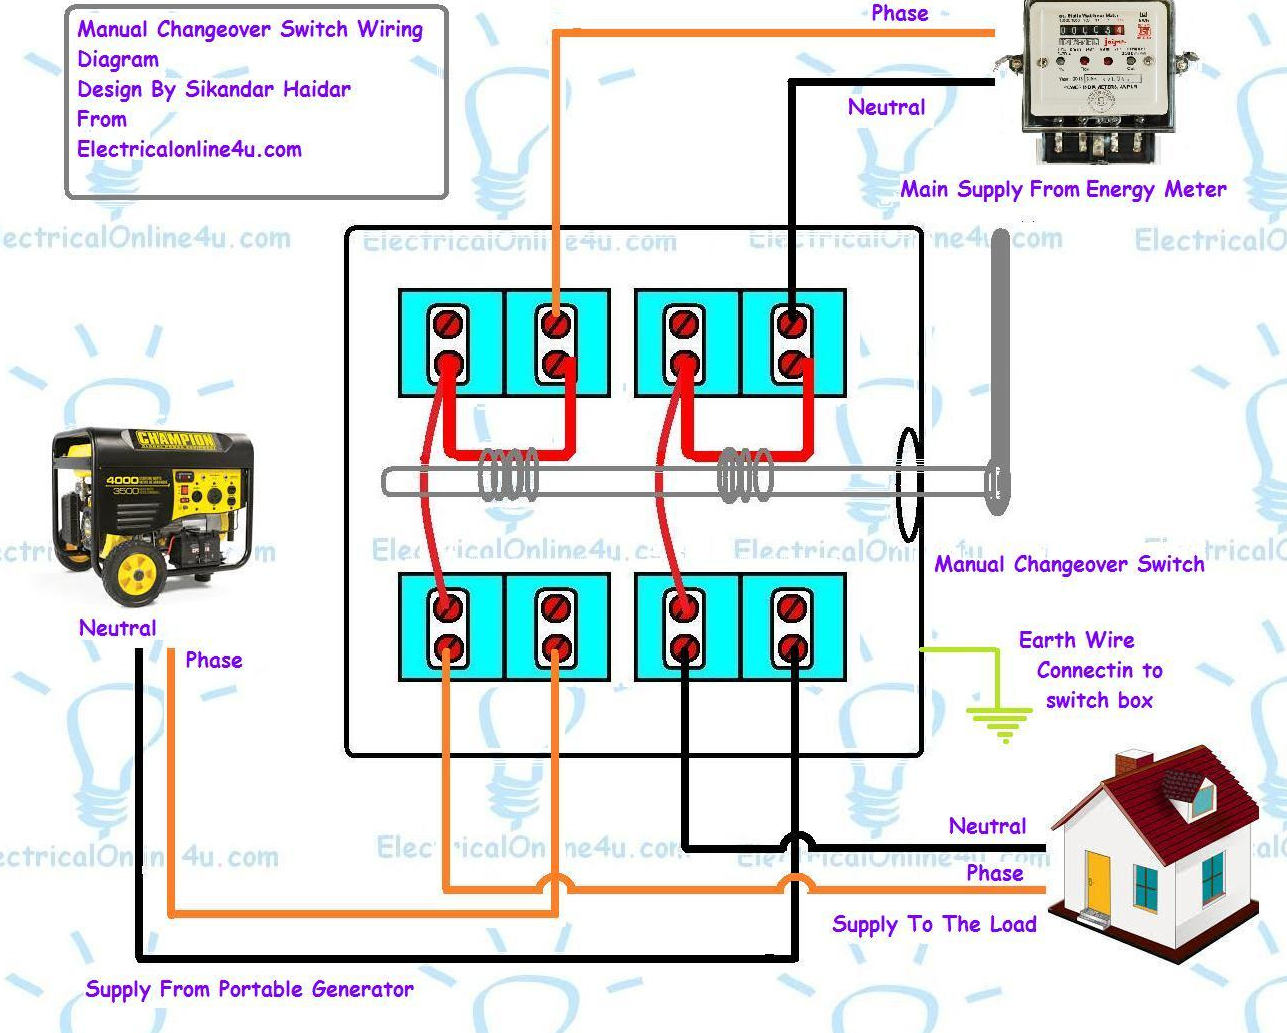 3 Phase Surge Protector Wiring Diagram | Wiring Liry on surge protector cover, surge protector voltage regulator, surge protector power, surge protector parts diagram, surge protector symbol, surge protector battery, surge protector generator, surge protector schematic, surge arrester single line diagram, surge suppressor wiring diagram, surge protector fuse, surge protector dimensions, surge protector safety, surge protector circuit breaker, surge protector circuit diagram, surge arrestor wiring diagram, surge protector lights, surge protector plug, surge guard wiring diagram, surge protector installation,